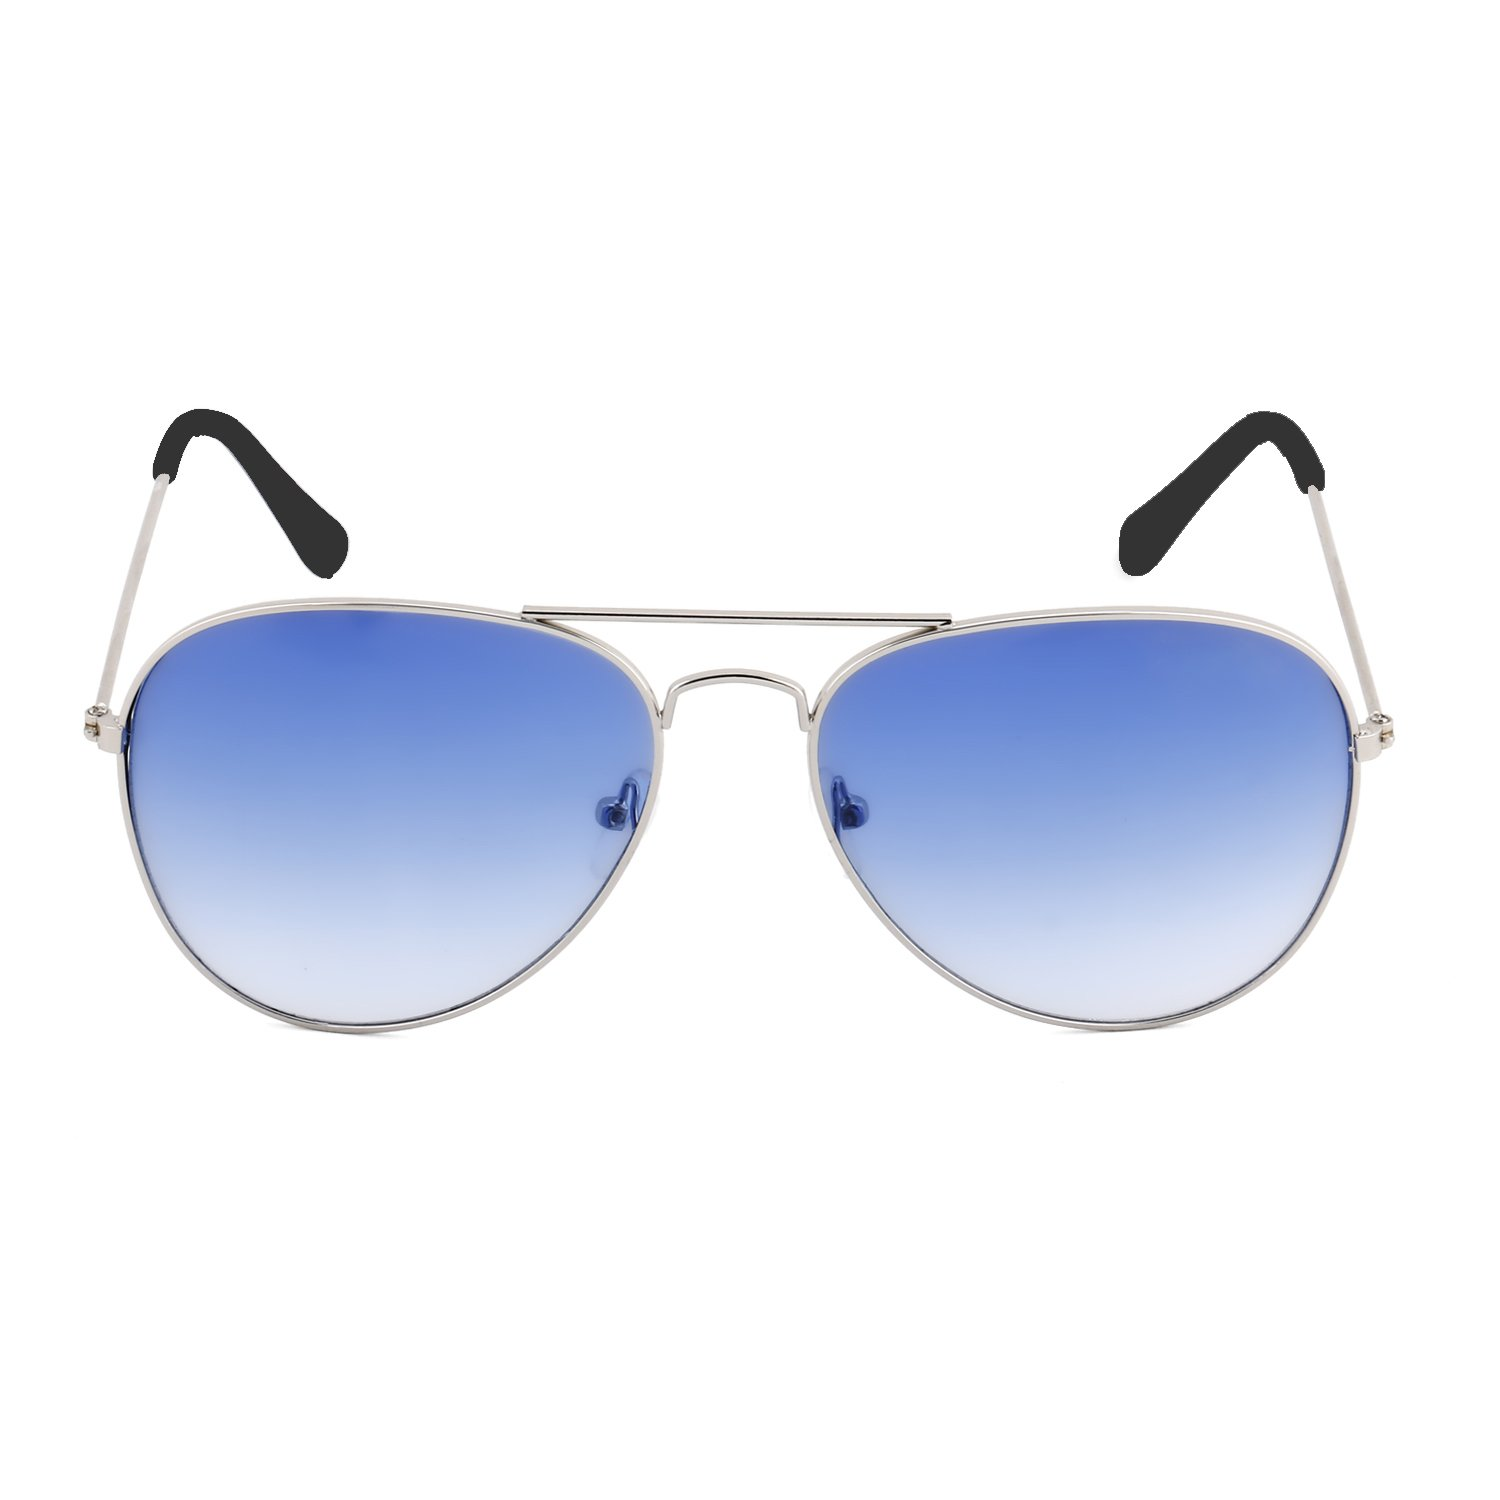 1dc81e4eaa Royal Son UV Protected Aviator Men and Women Sunglasses (Silver)  Amazon.in   Clothing   Accessories